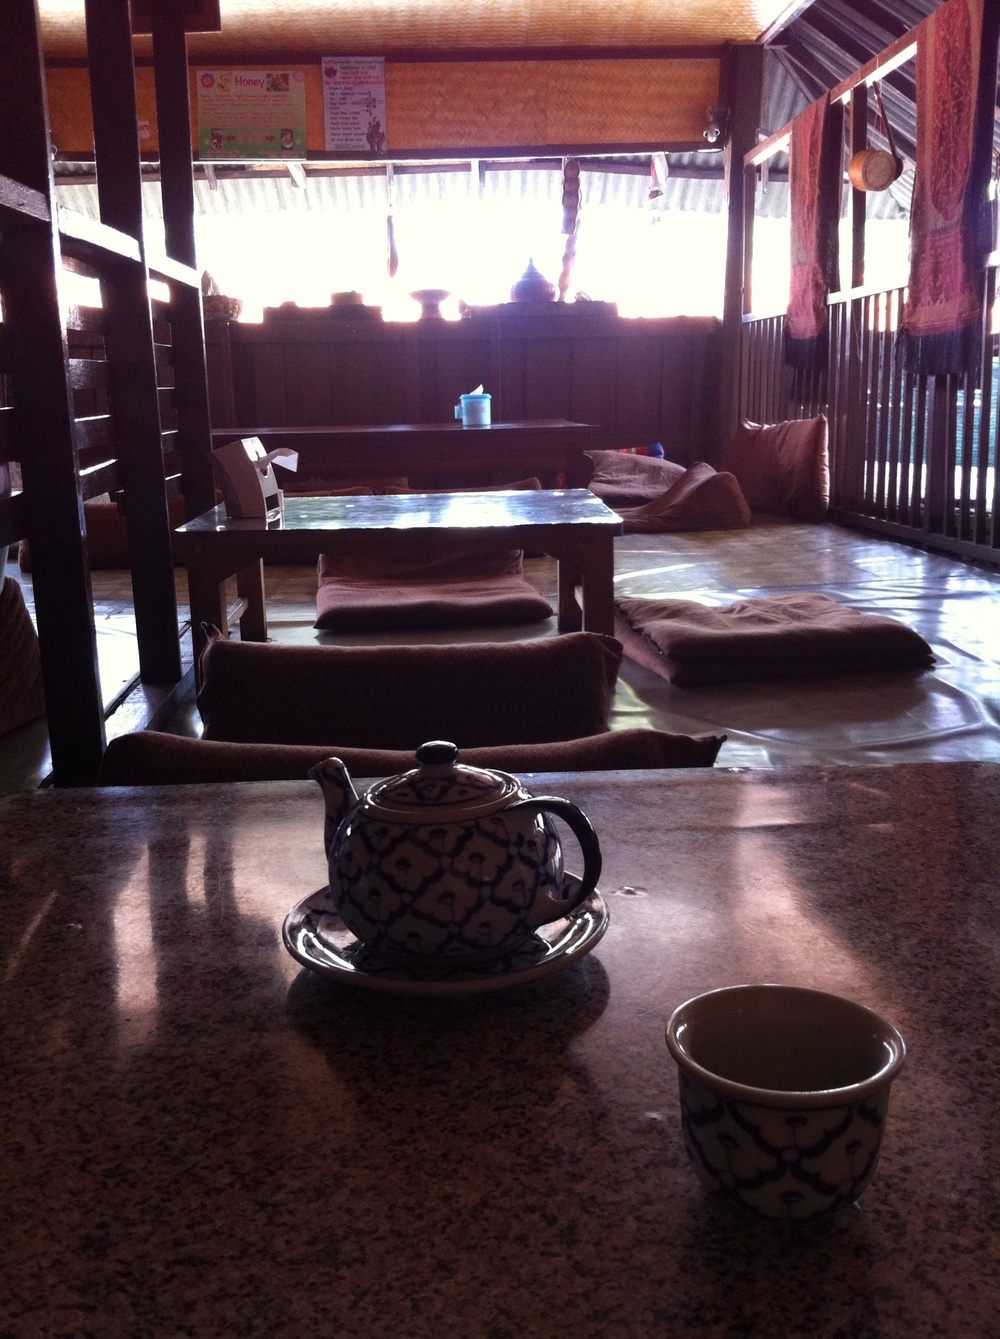 A quiet cup of crysanthemum tea at Aum